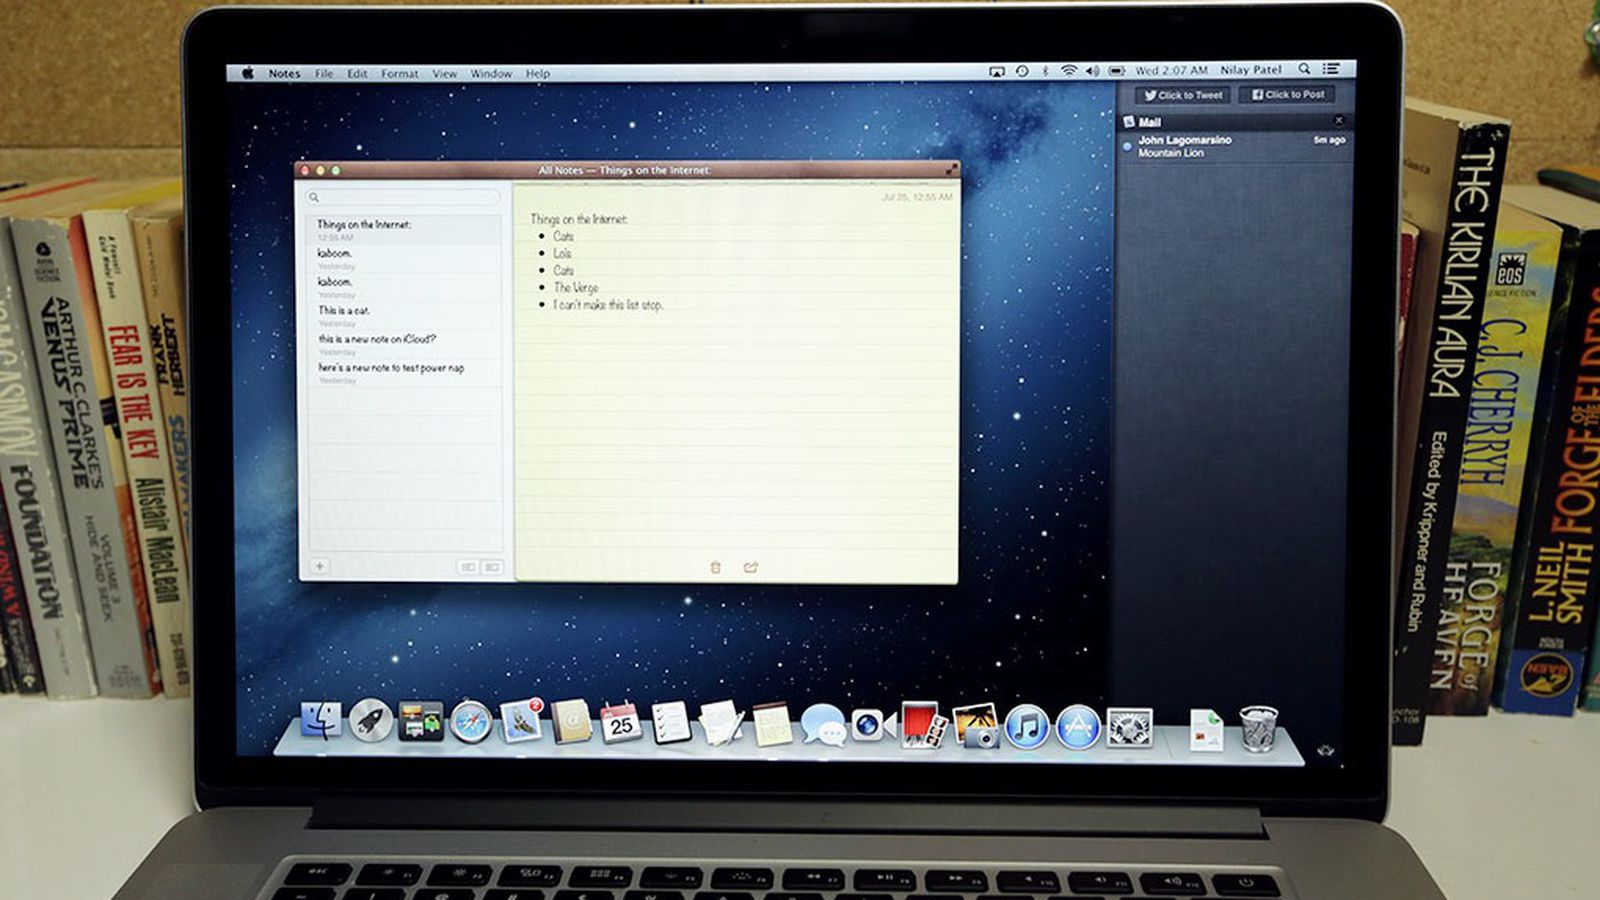 OS X 10.8 Mountain Lion review | The Verge